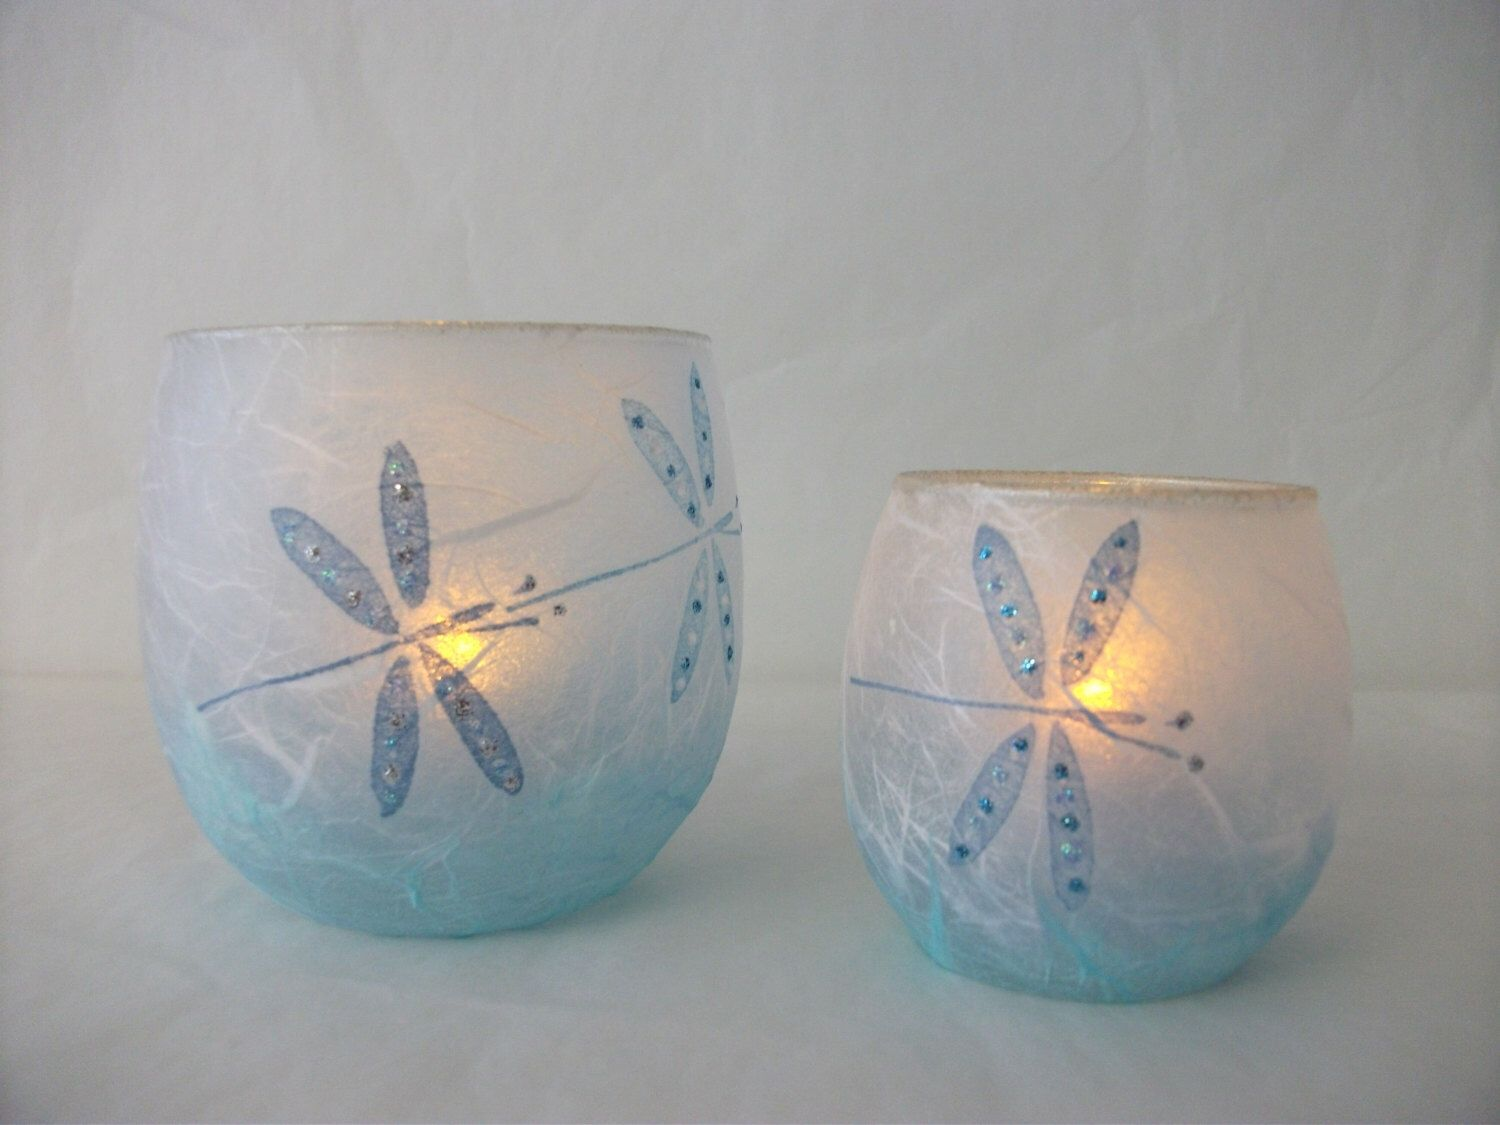 Dragonfly Tea Light Candle Holder Set in shades of Blue.New home gift/mothers day gift. by TheGlasscraftstudio on Etsy https://www.etsy.com/listing/201362438/dragonfly-tea-light-candle-holder-set-in